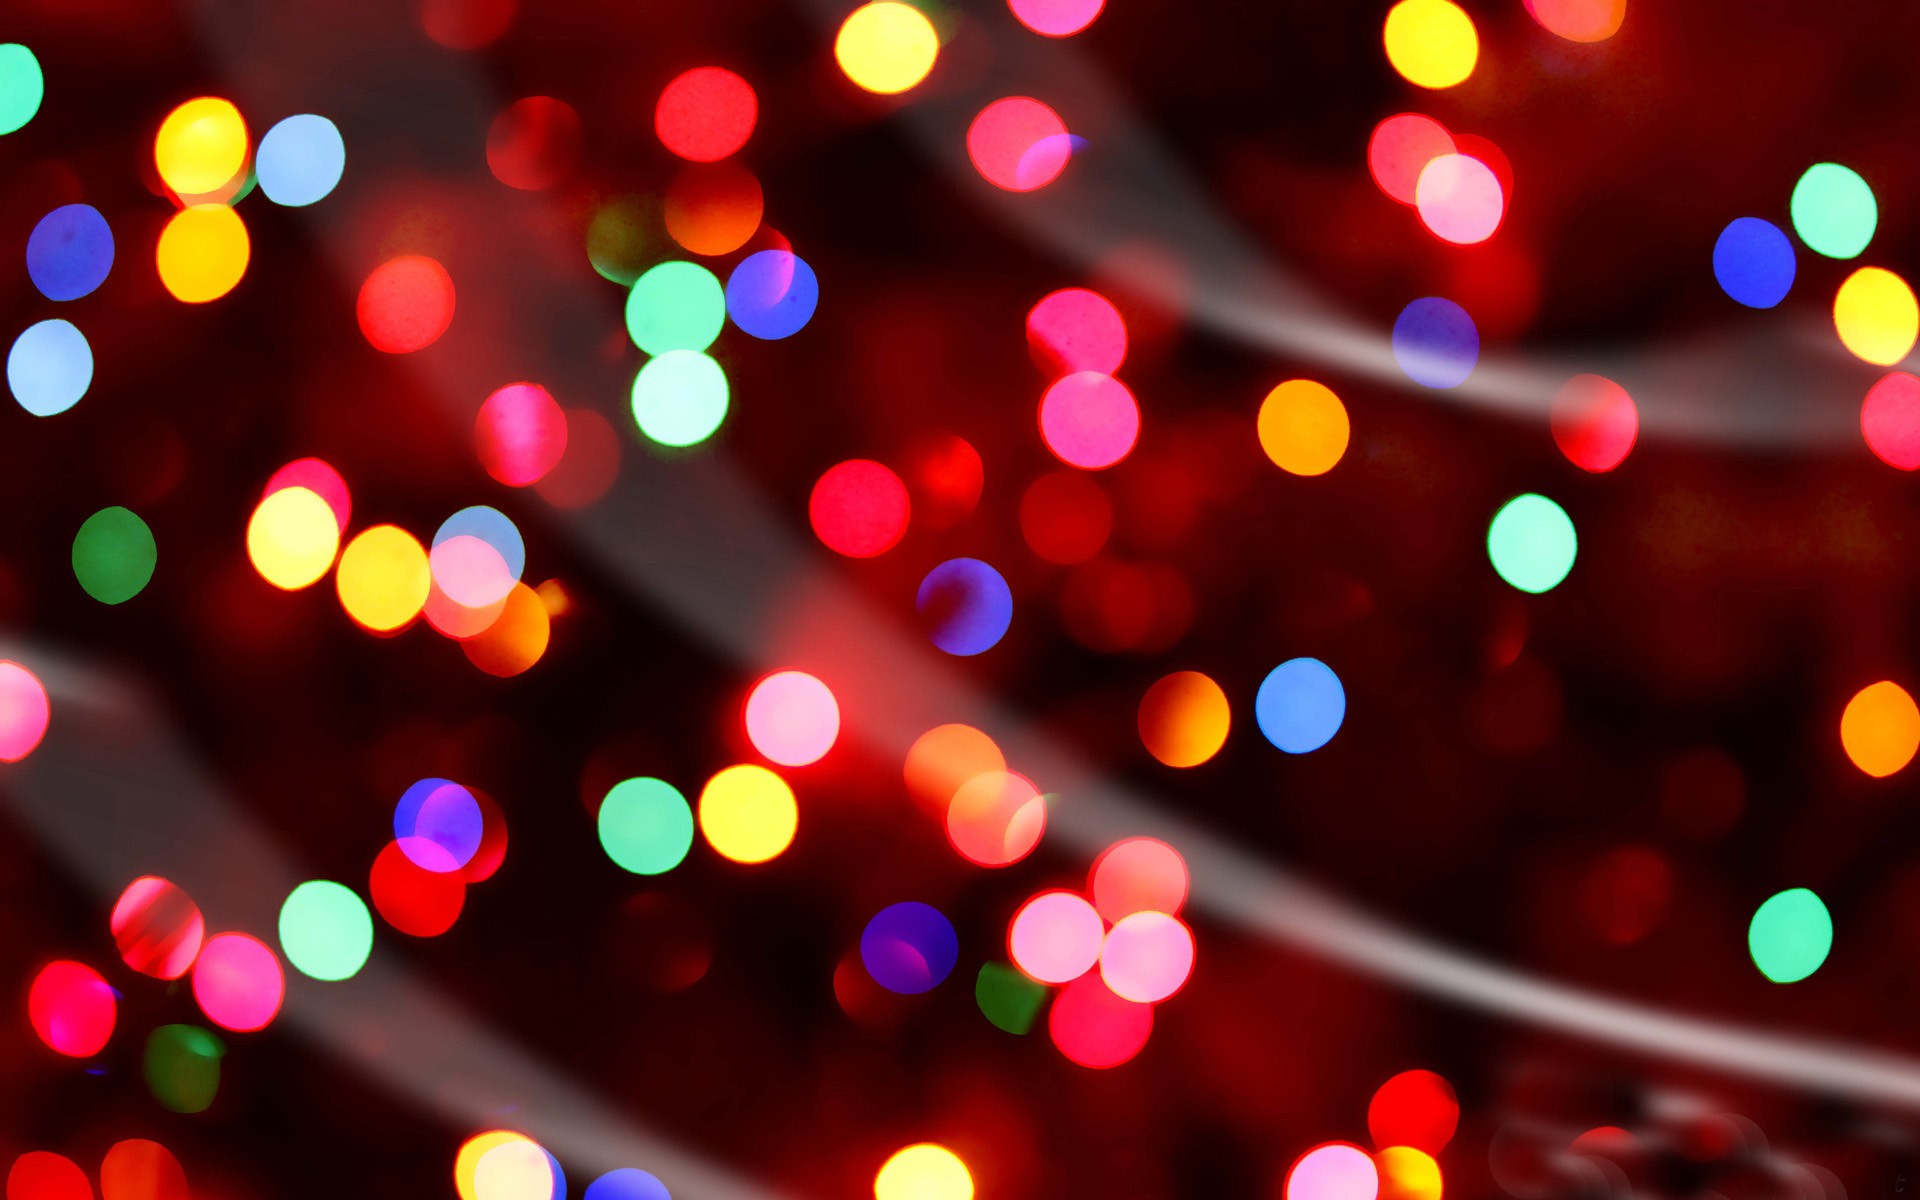 Christmas Background Tumblr.Christmas Background Tumblr Download Free Wallpapers For